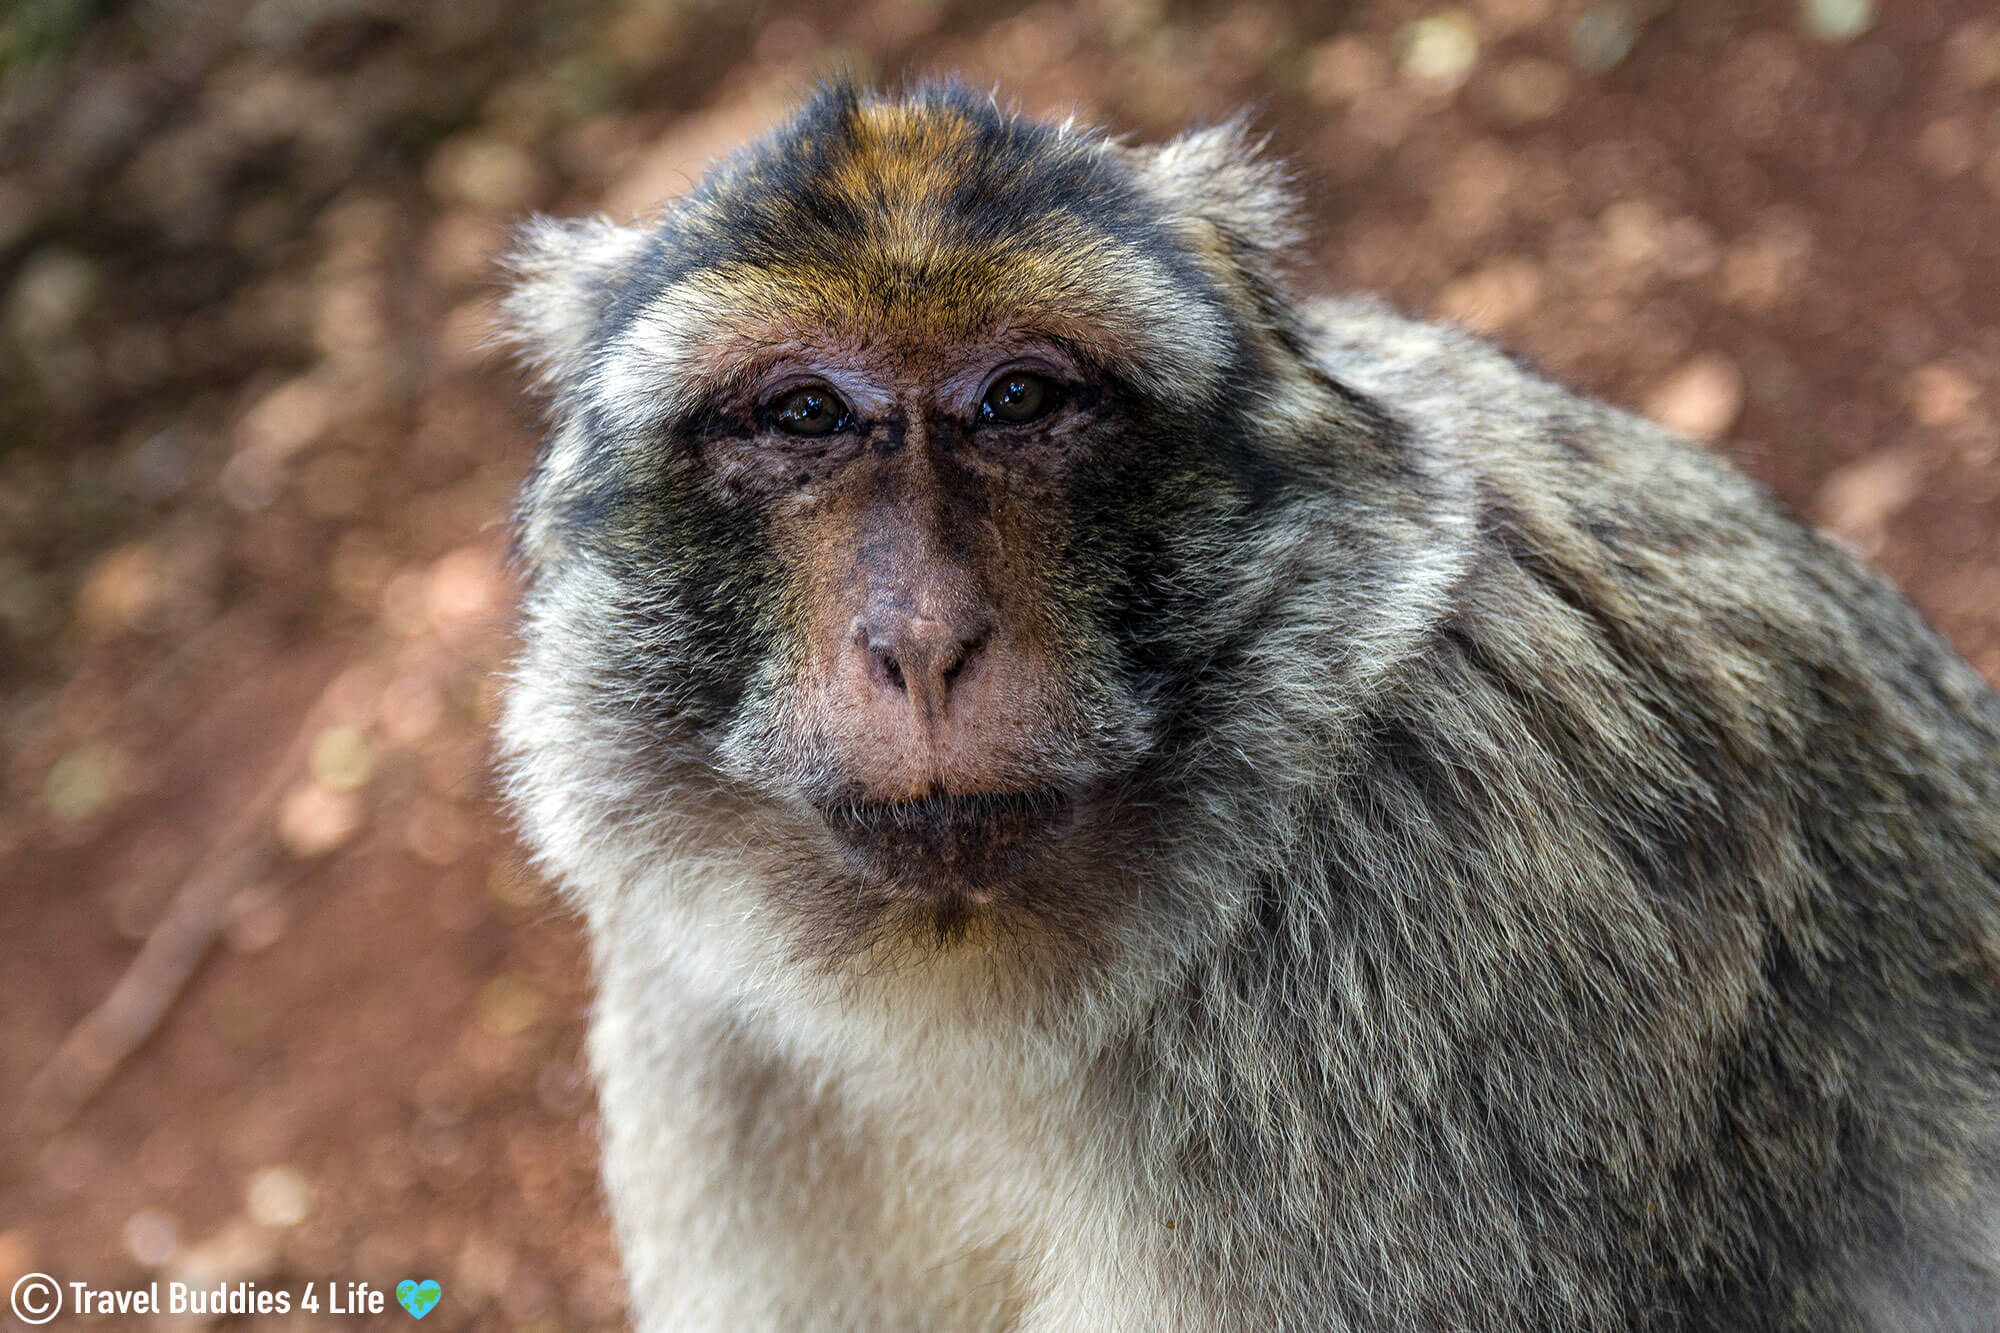 A Barbary Macaque Staring into the Camera at the Monkey Centre in Rocamadour, France, Europe